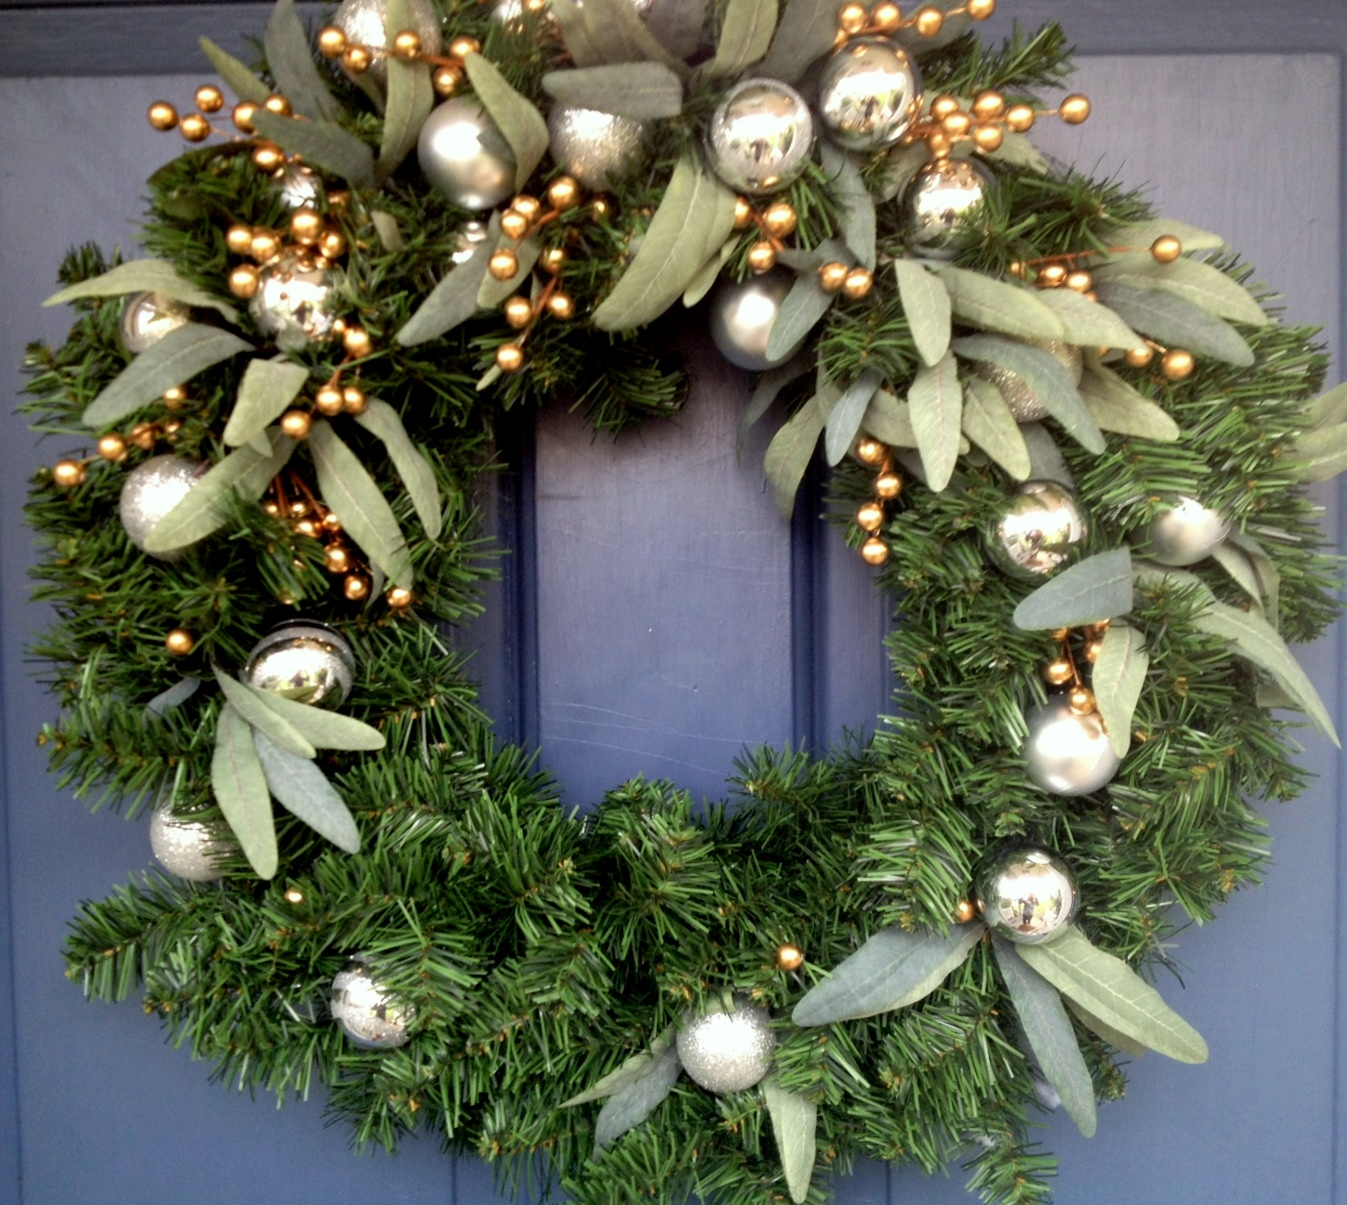 Diy Christmas Wreath Via Martha Stewart Cline Rose